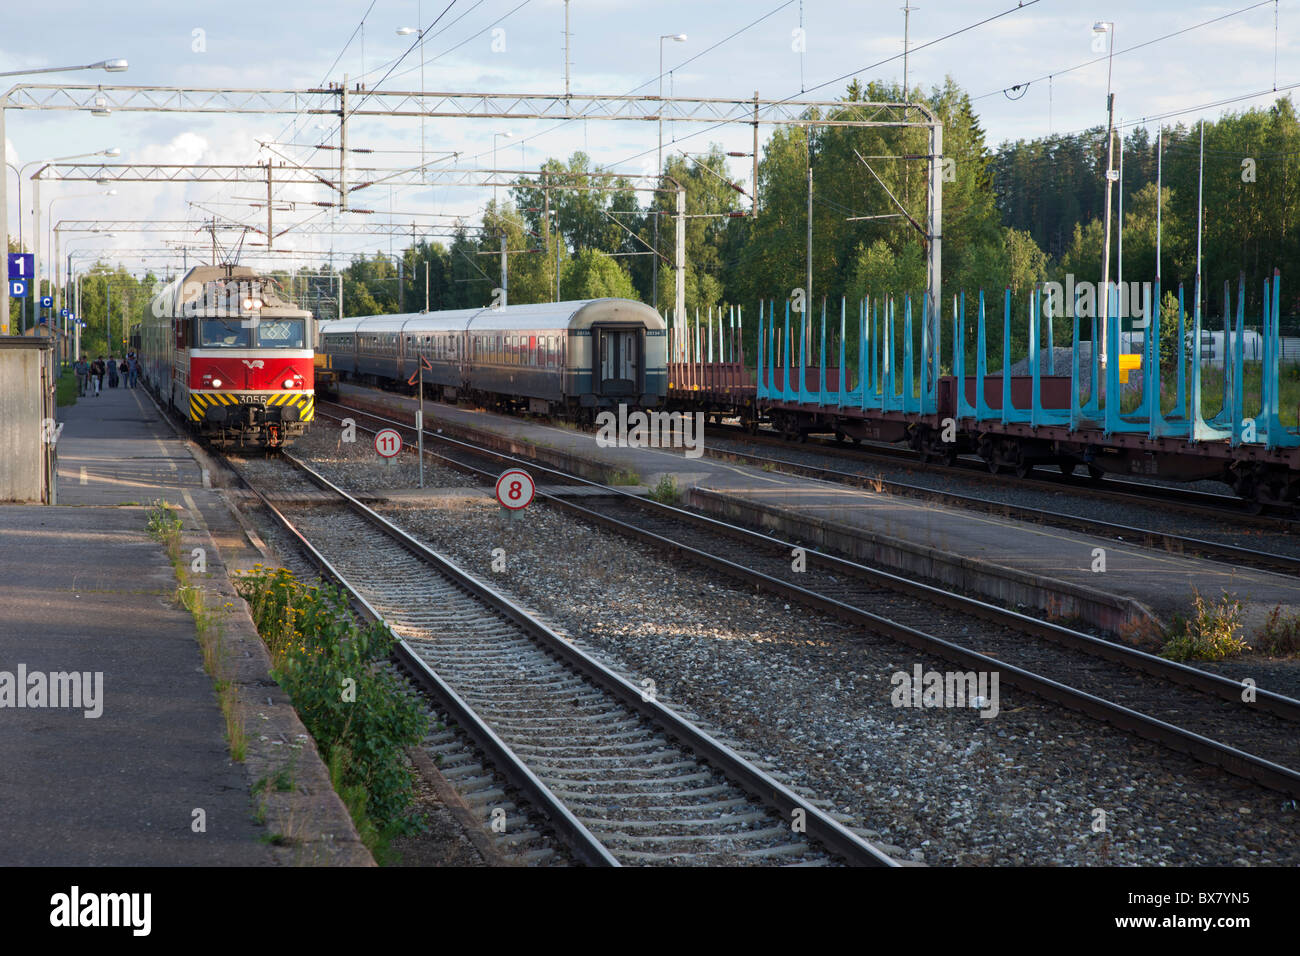 Railway station where Intercity passenger trains are passing each other , Finland - Stock Image